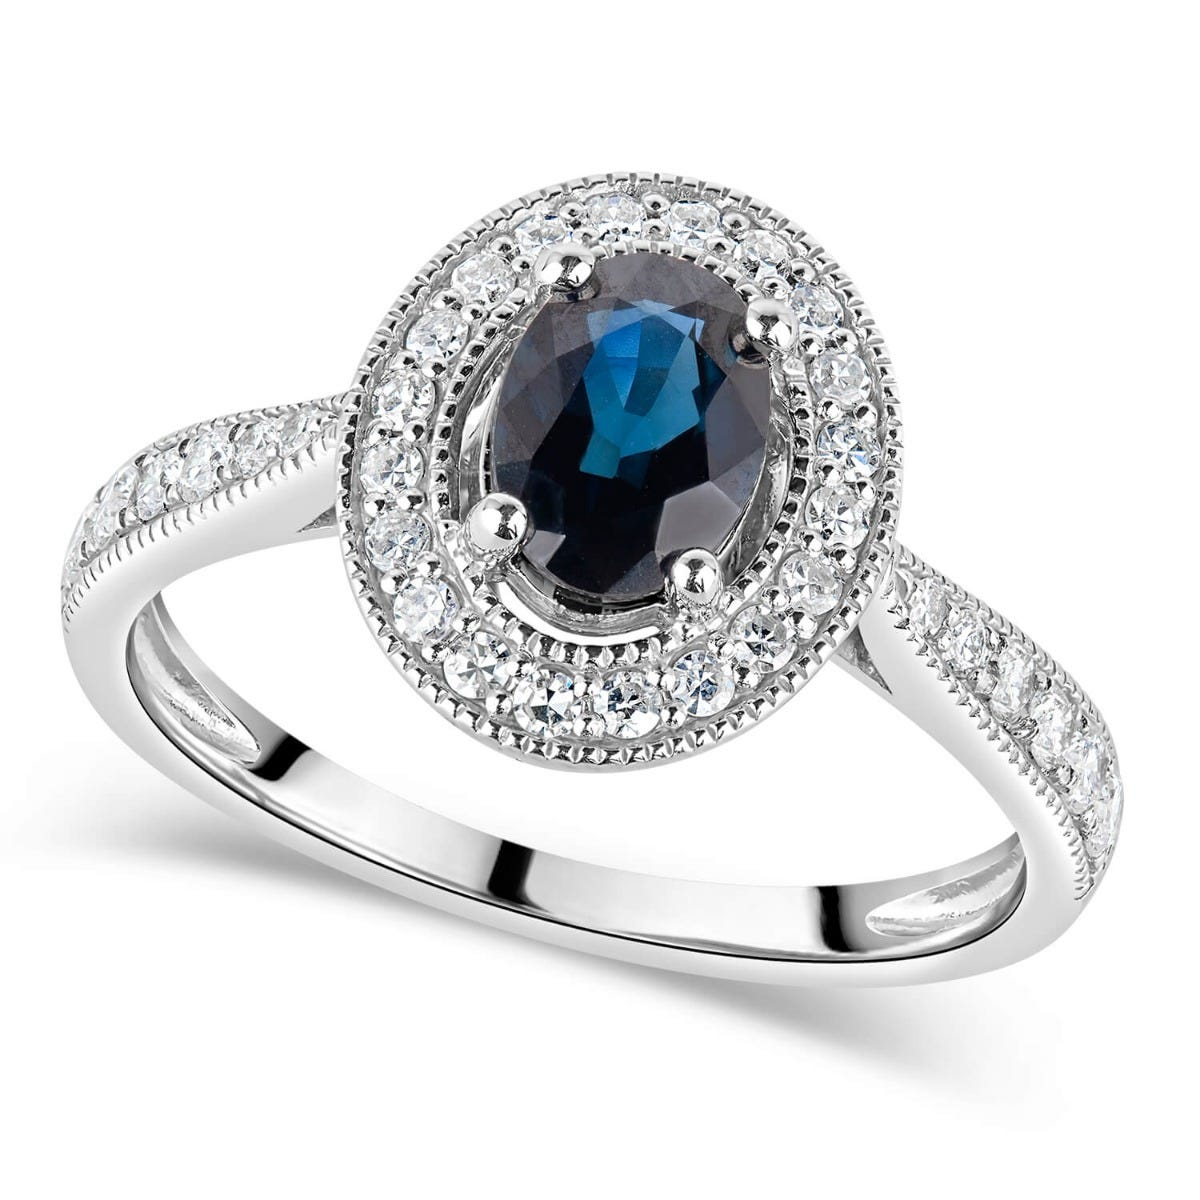 9ct White Gold Diamond Halo and Oval Sapphire Ring